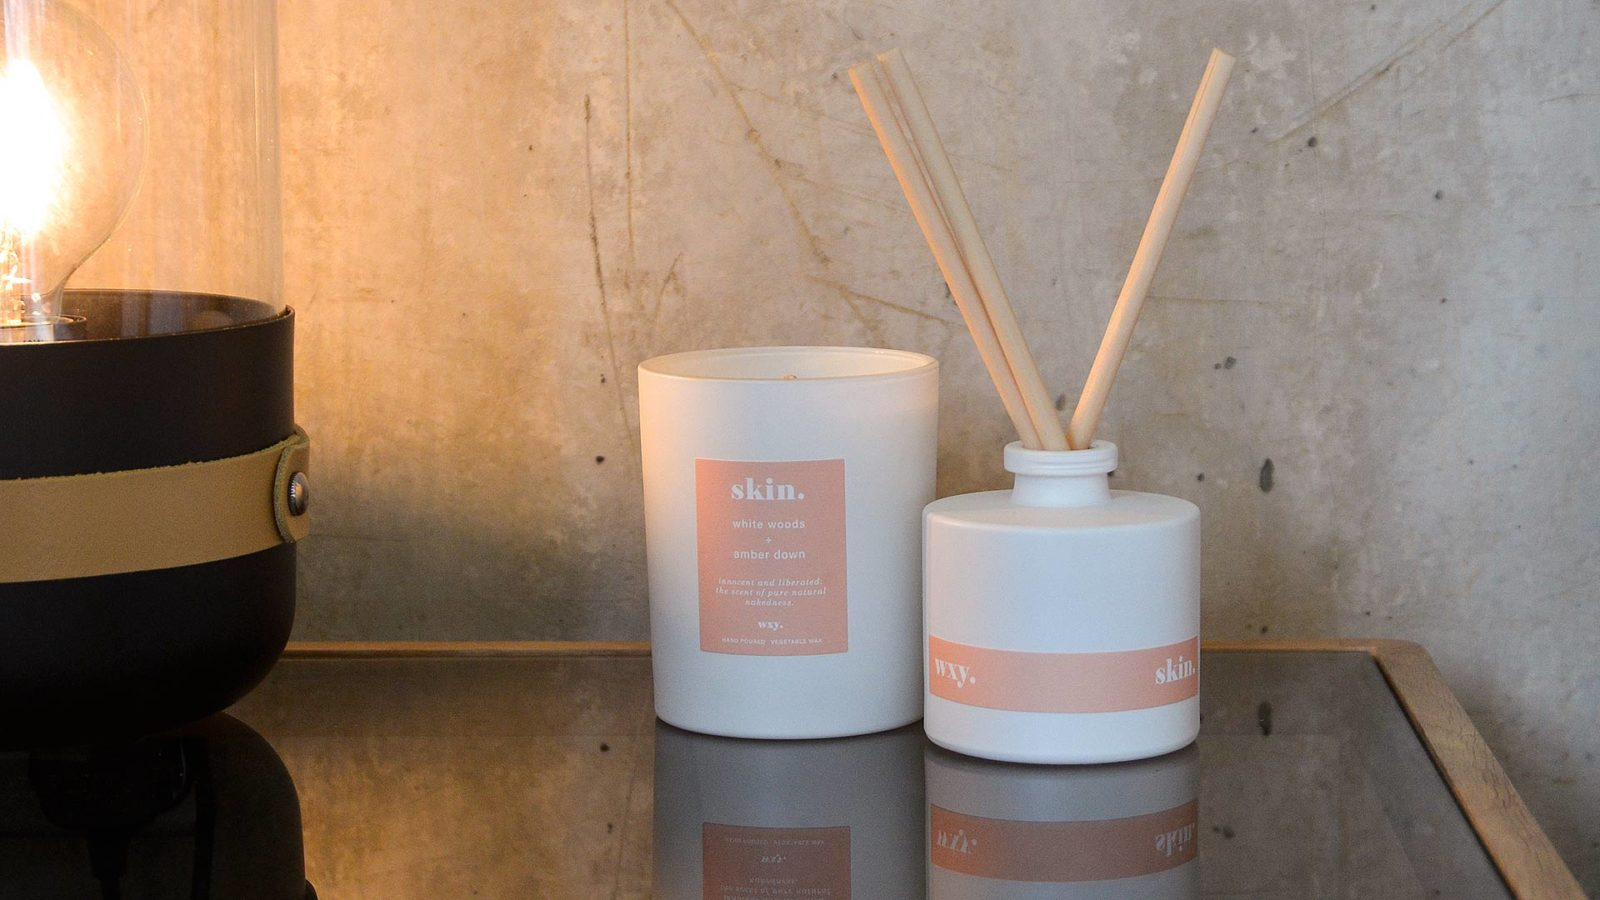 room-scents-in-white-glass-diffuser-and-candle-Skin